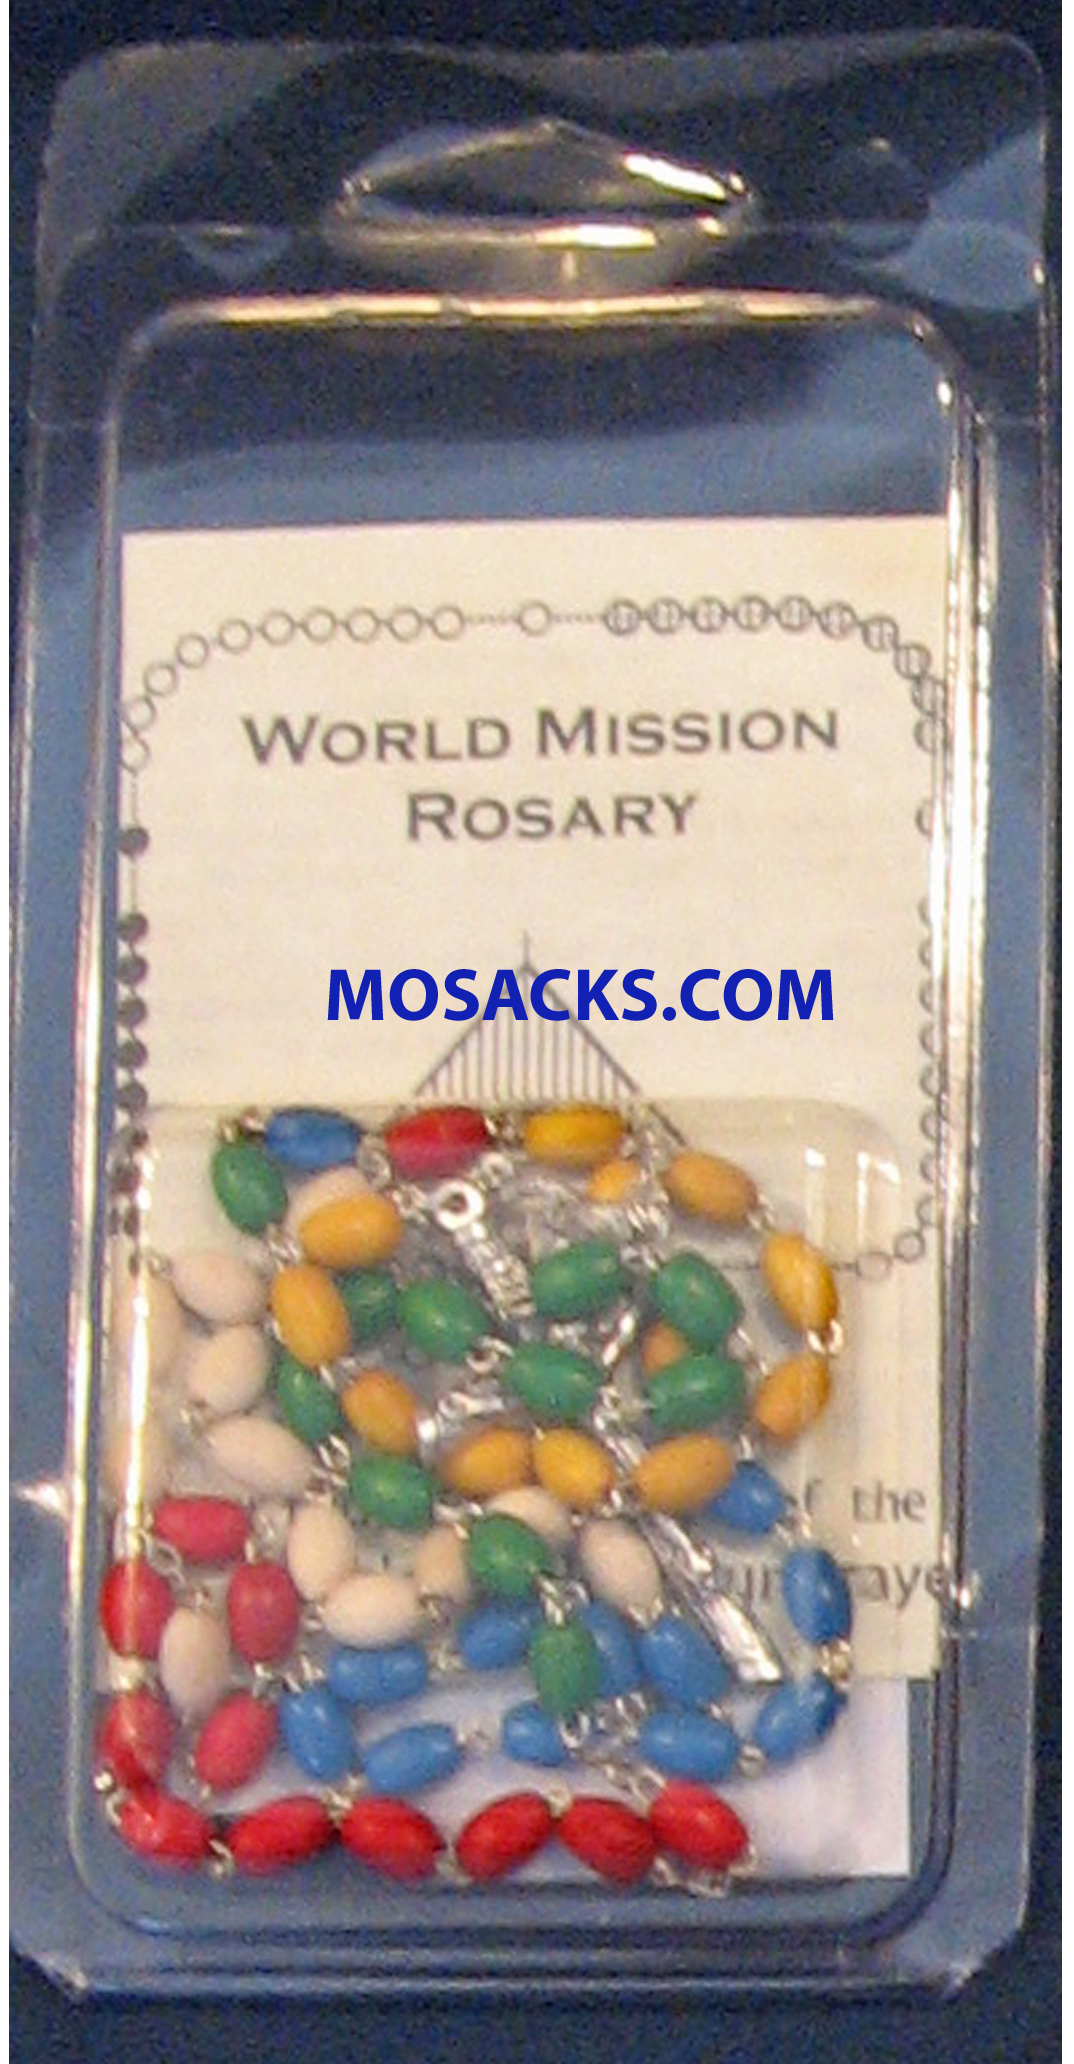 Rosary for the Missions Specialty Rosary World Mission Wood Rosary and World Mission Rosary Insert 64-416/C1